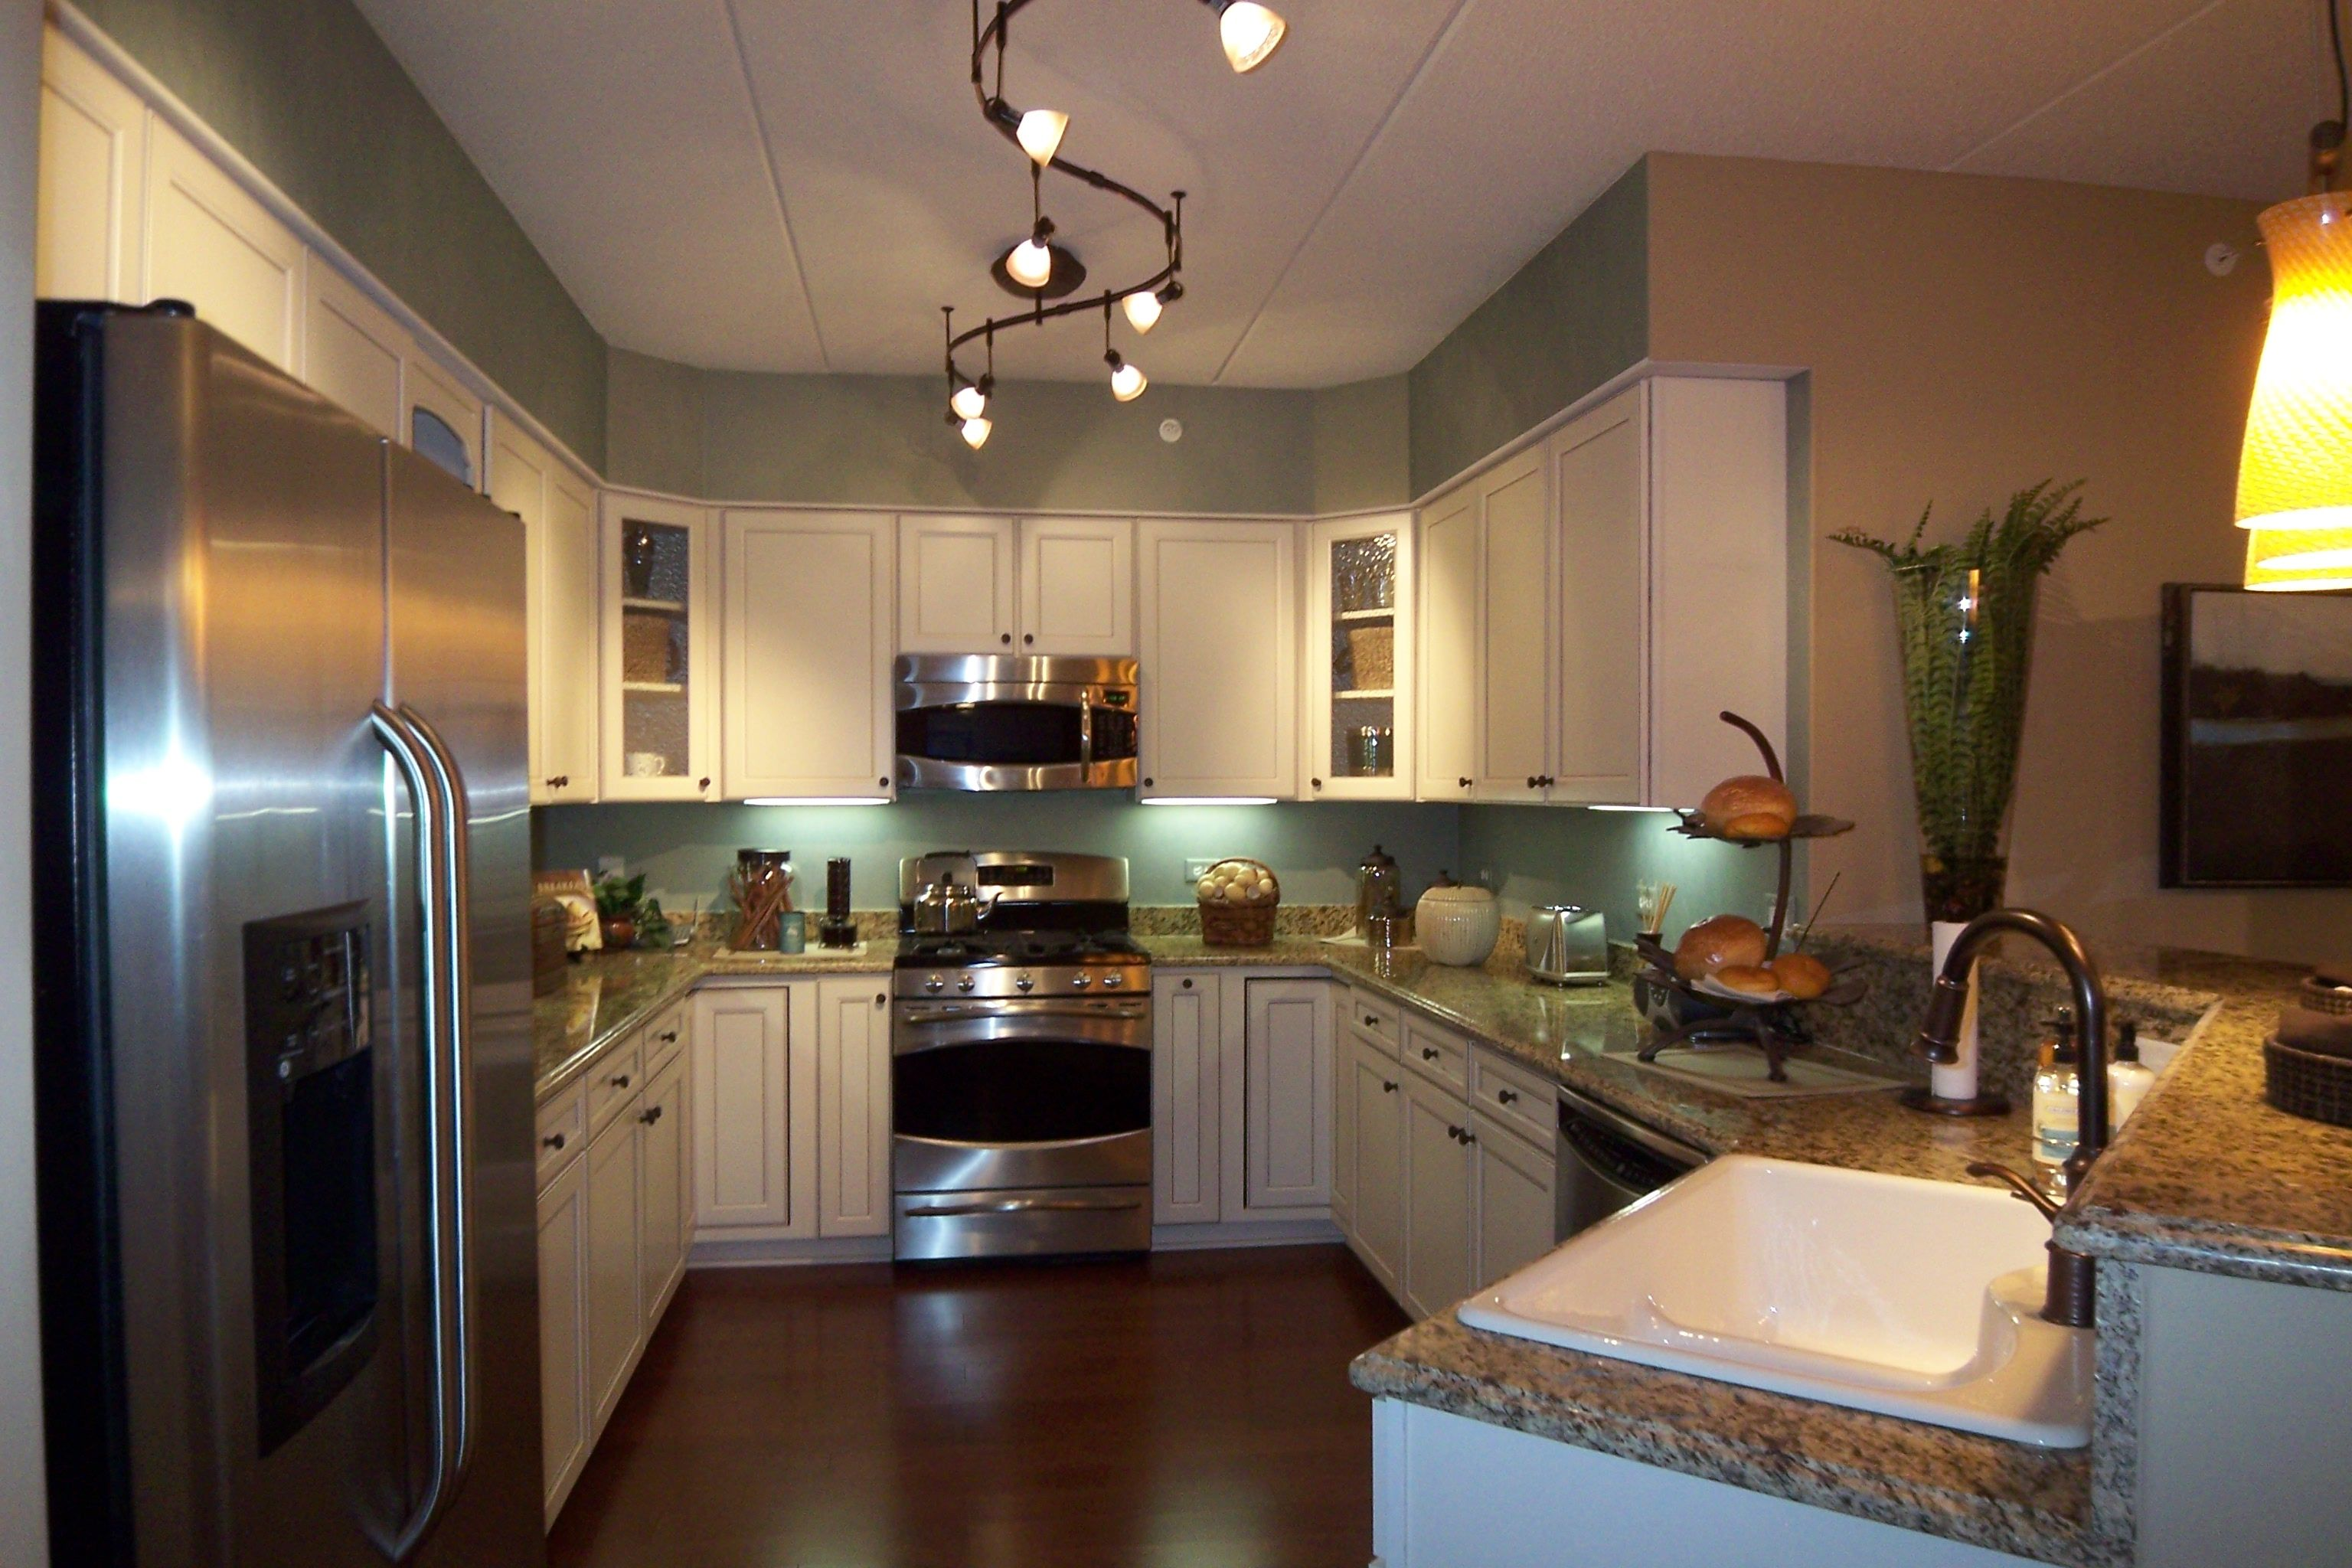 Kitchen Contemporary Lighting Country Ceiling Light Fixtures With